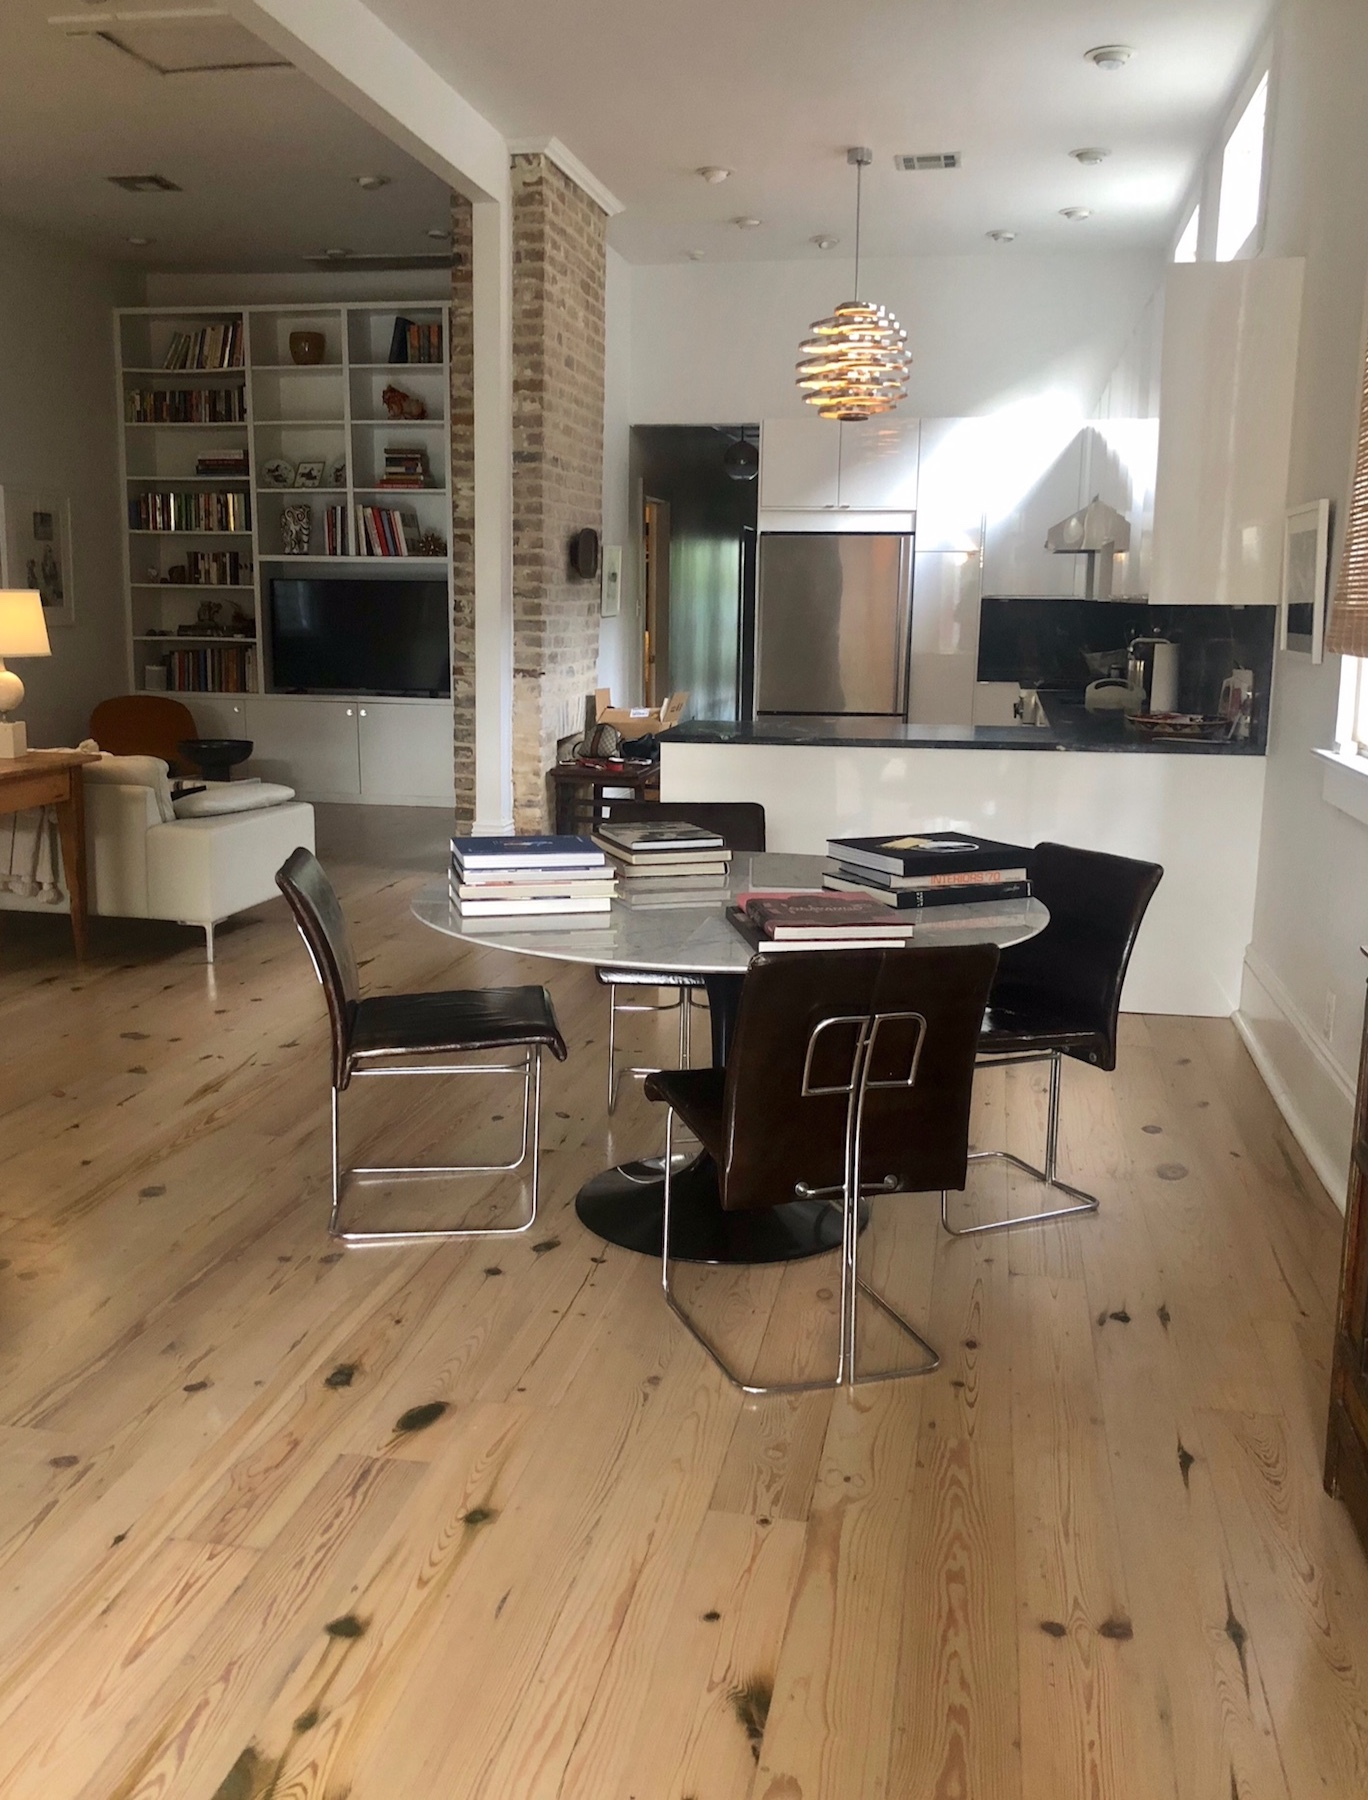 Photo of dining area hardwood flooring. It is bleached light with dark knots and has a custom stain.